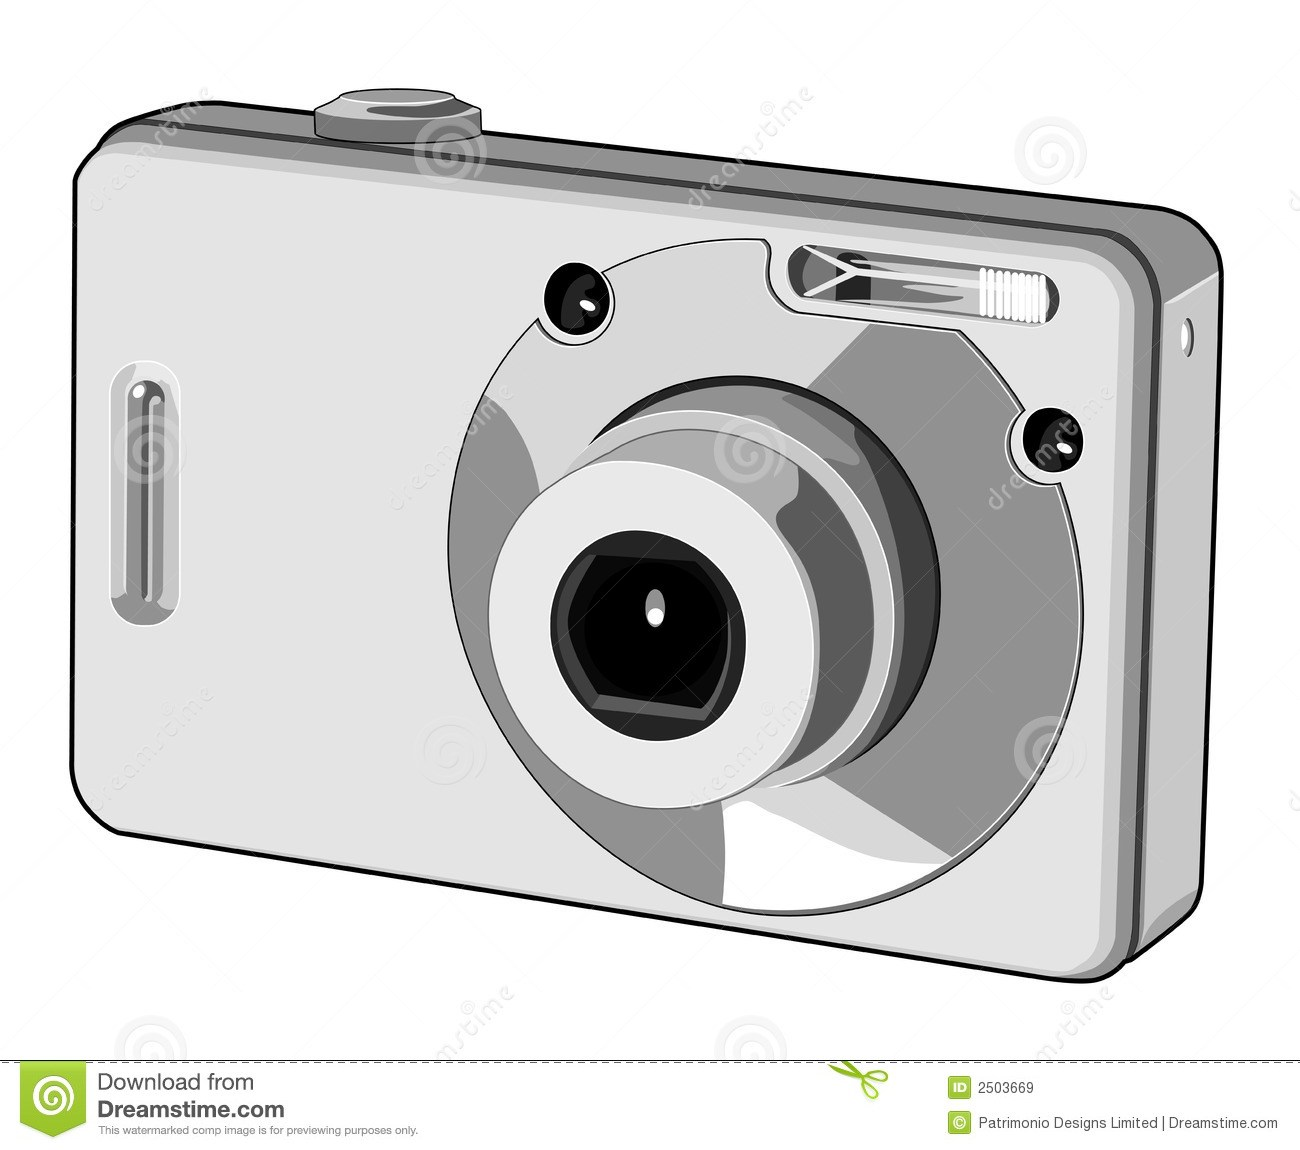 Digital cameras clipart picture transparent Digital camera clipart 1 » Clipart Portal picture transparent